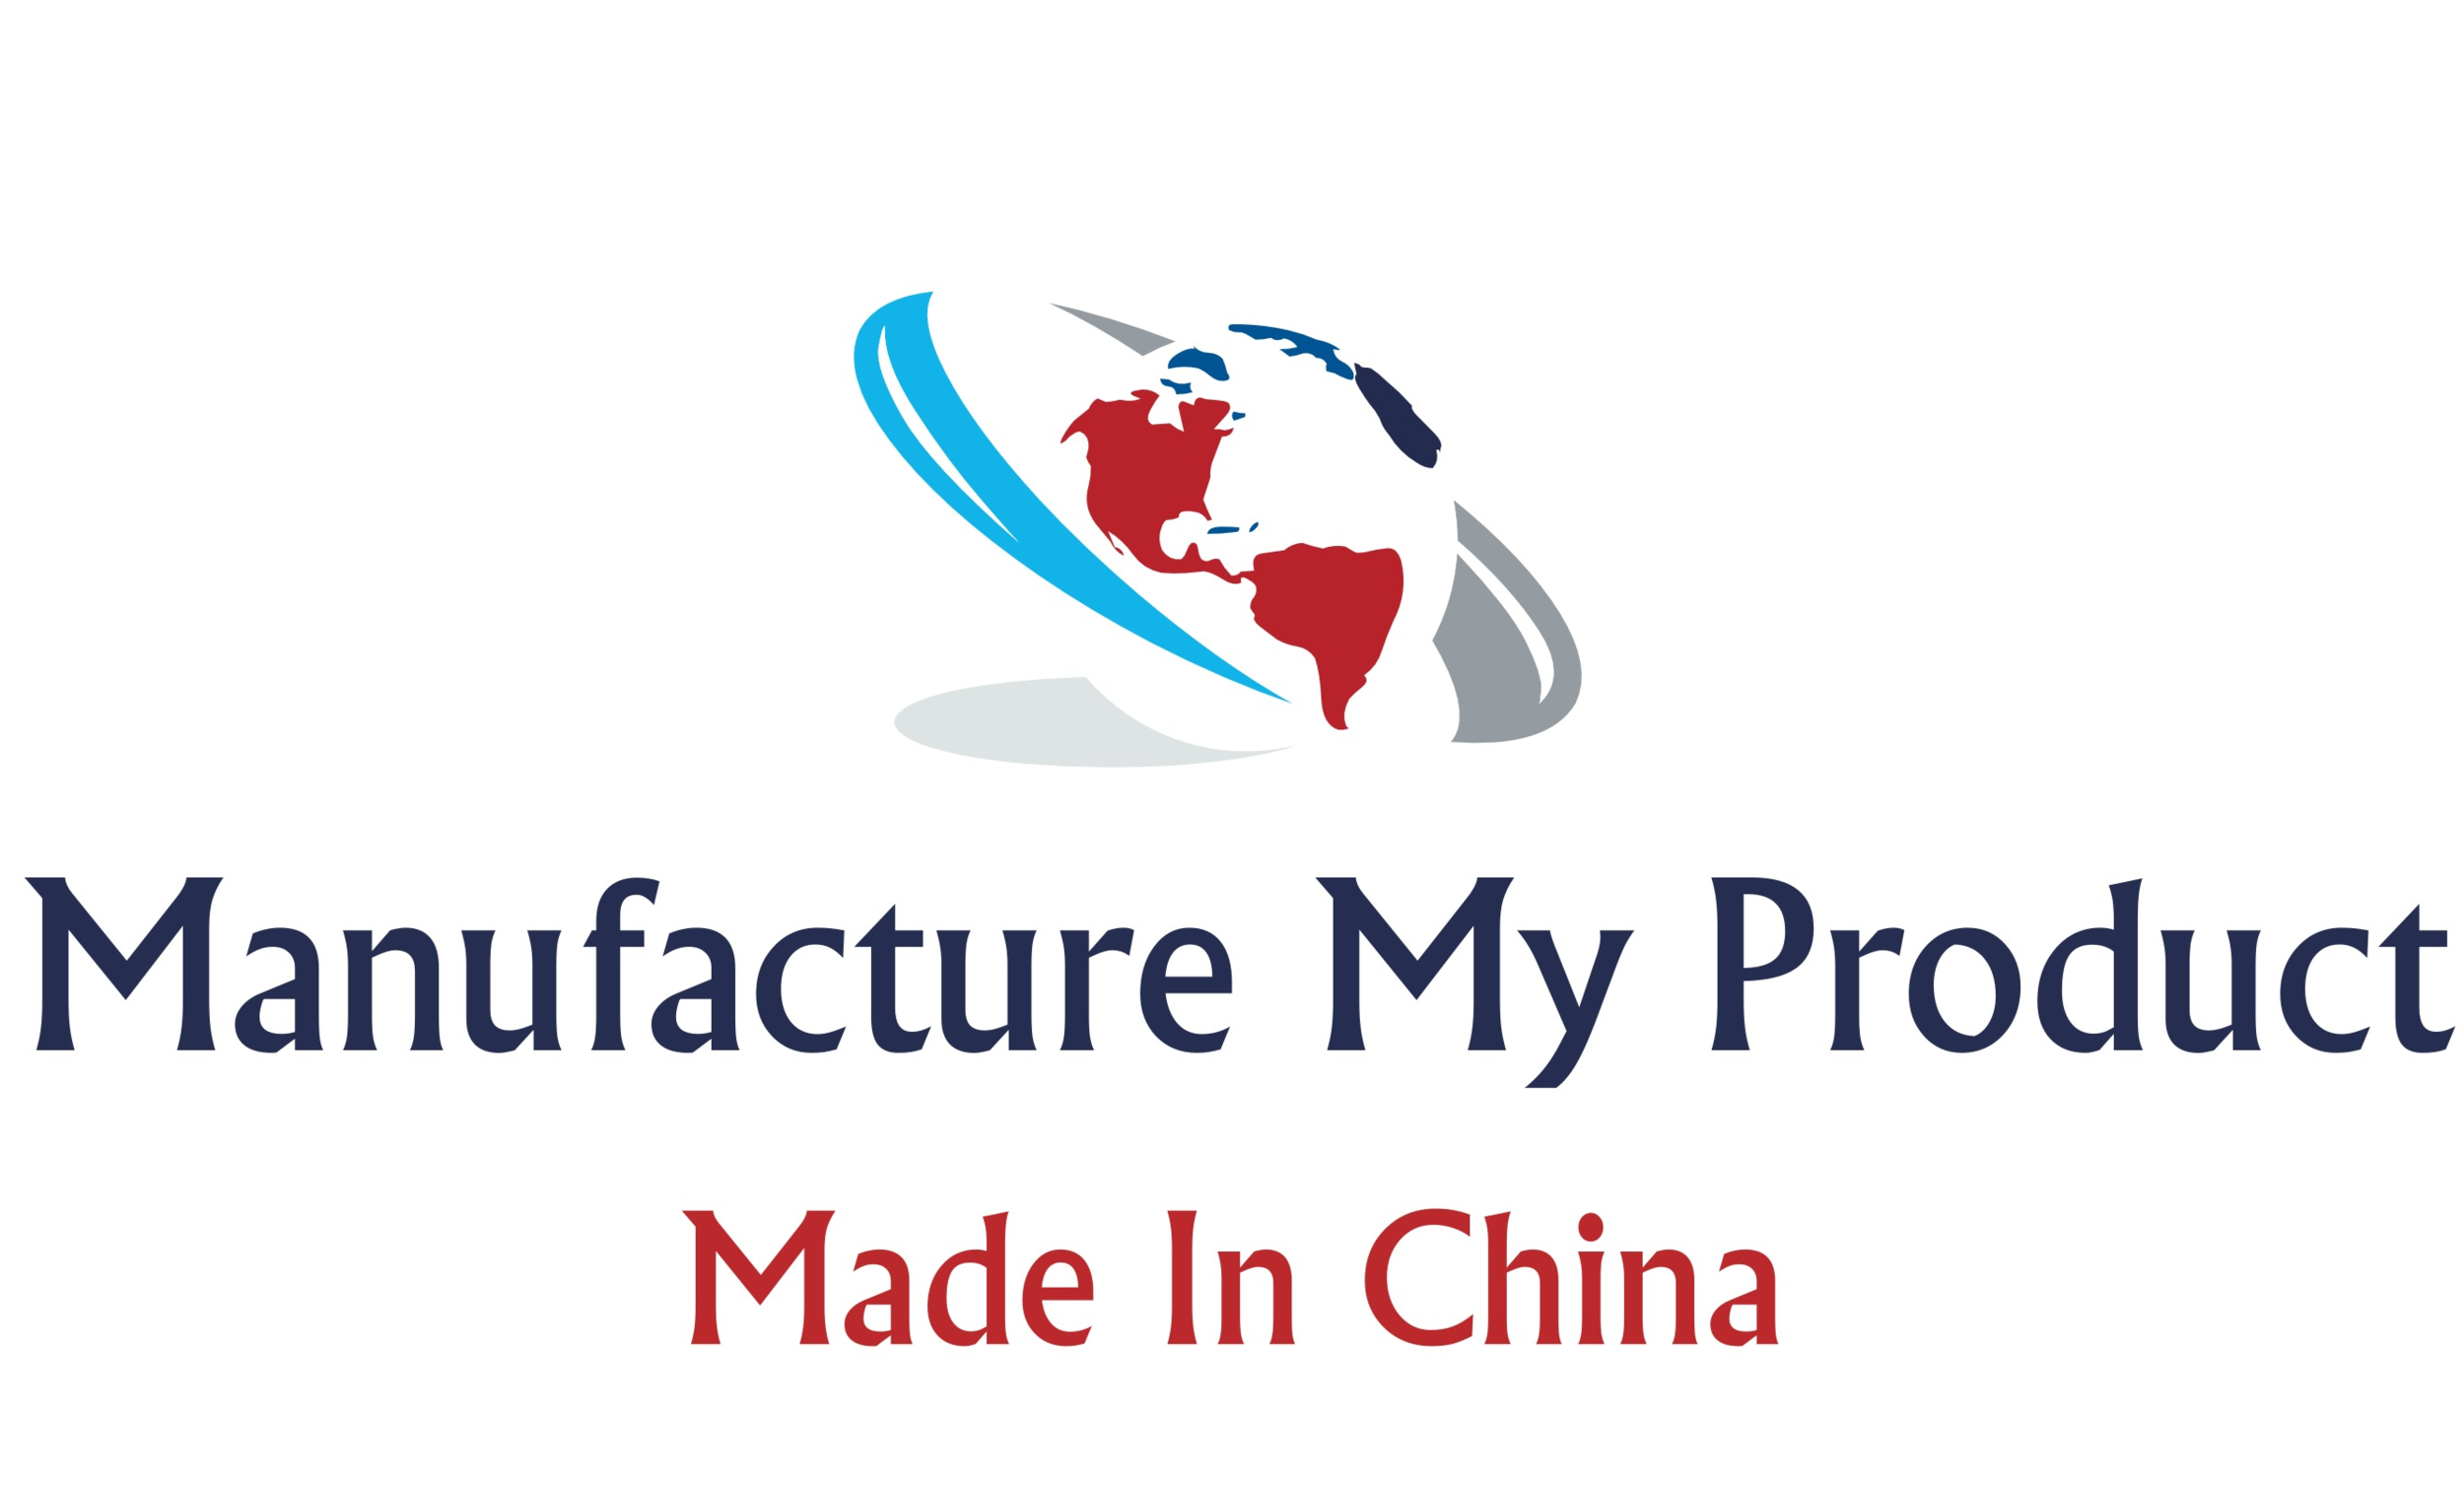 www.manufacturemyproduct.com